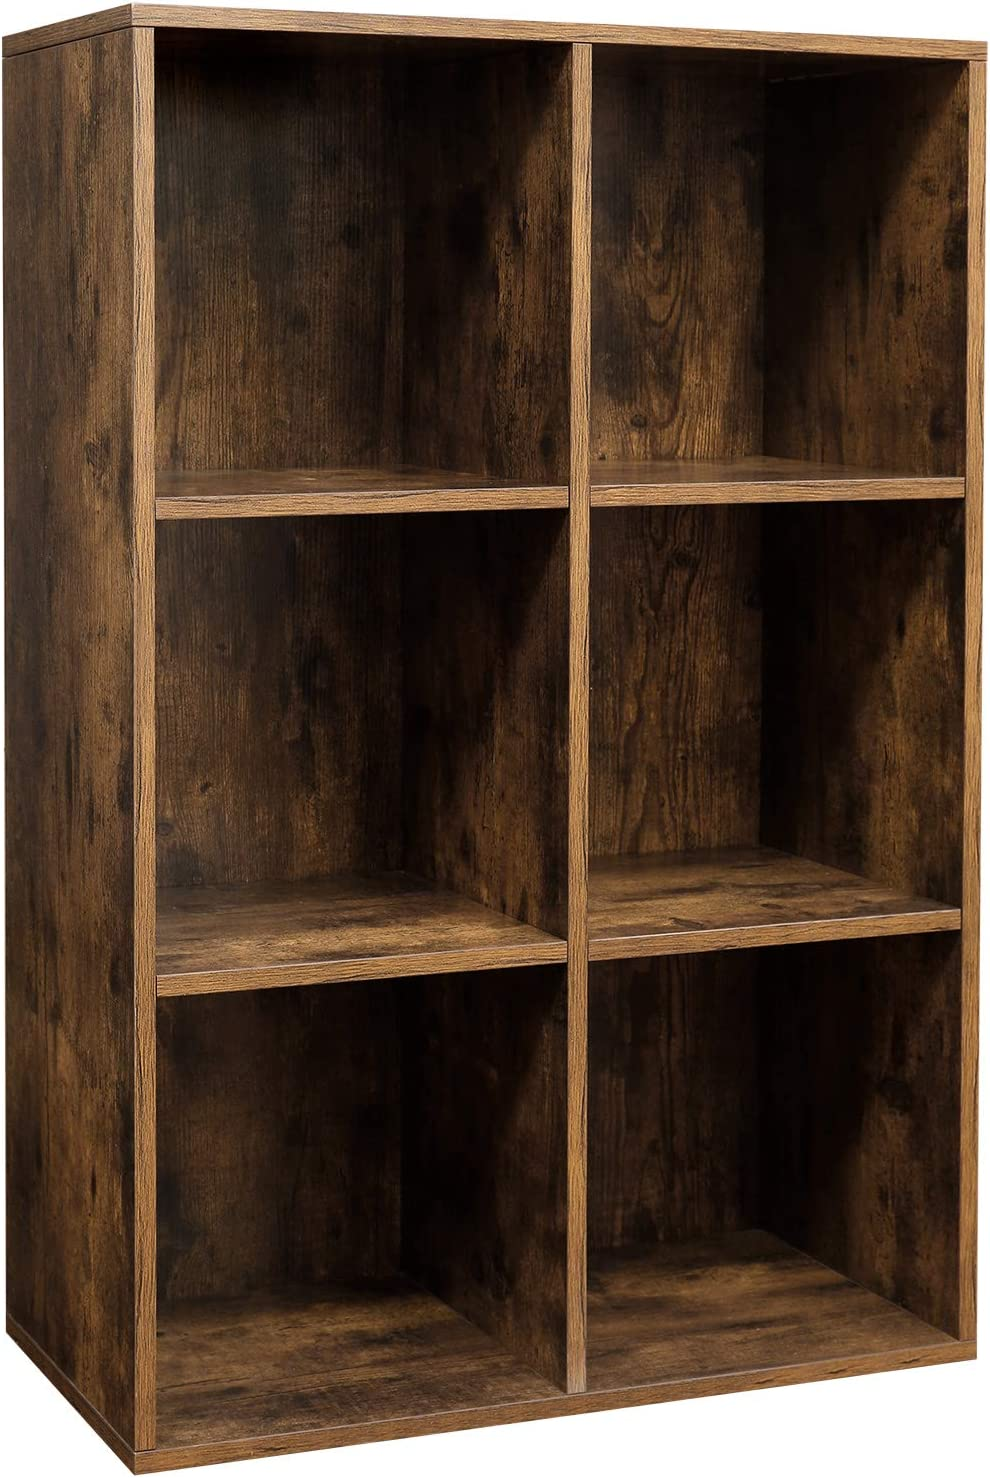 VASAGLE 6-Cube Bookcase, Display Rack for Trinkets, Souvenirs, Potted Plants, for Study Room, Office, Living Room, 65.5 x 30 x 97.5 cm, Rustic Brown LBC203BX